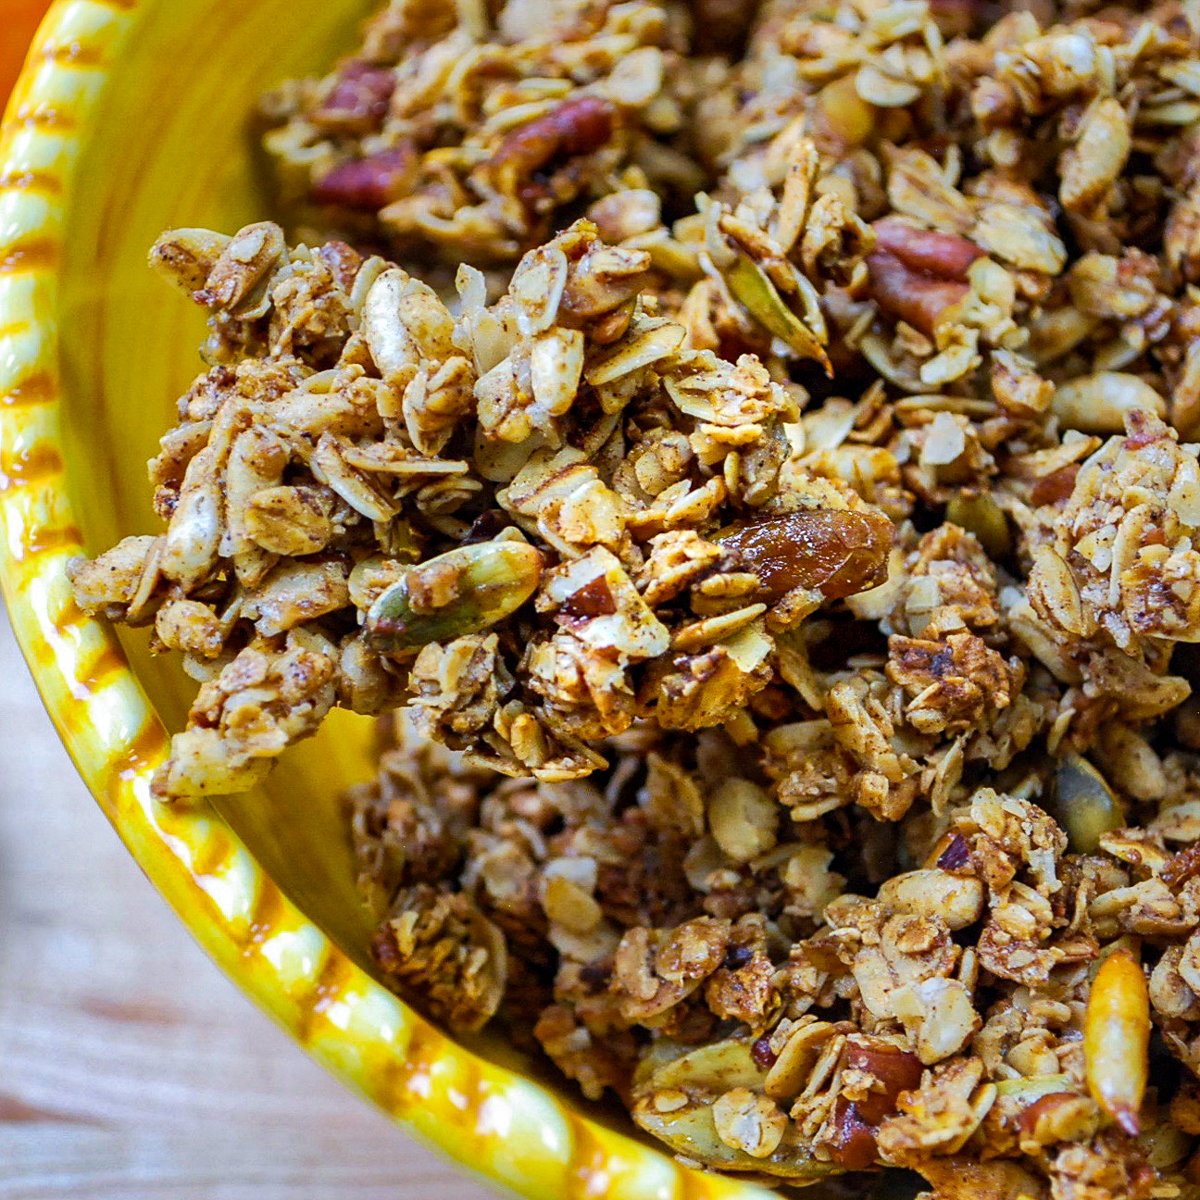 A closeup of a yellow bowl filled with granola.